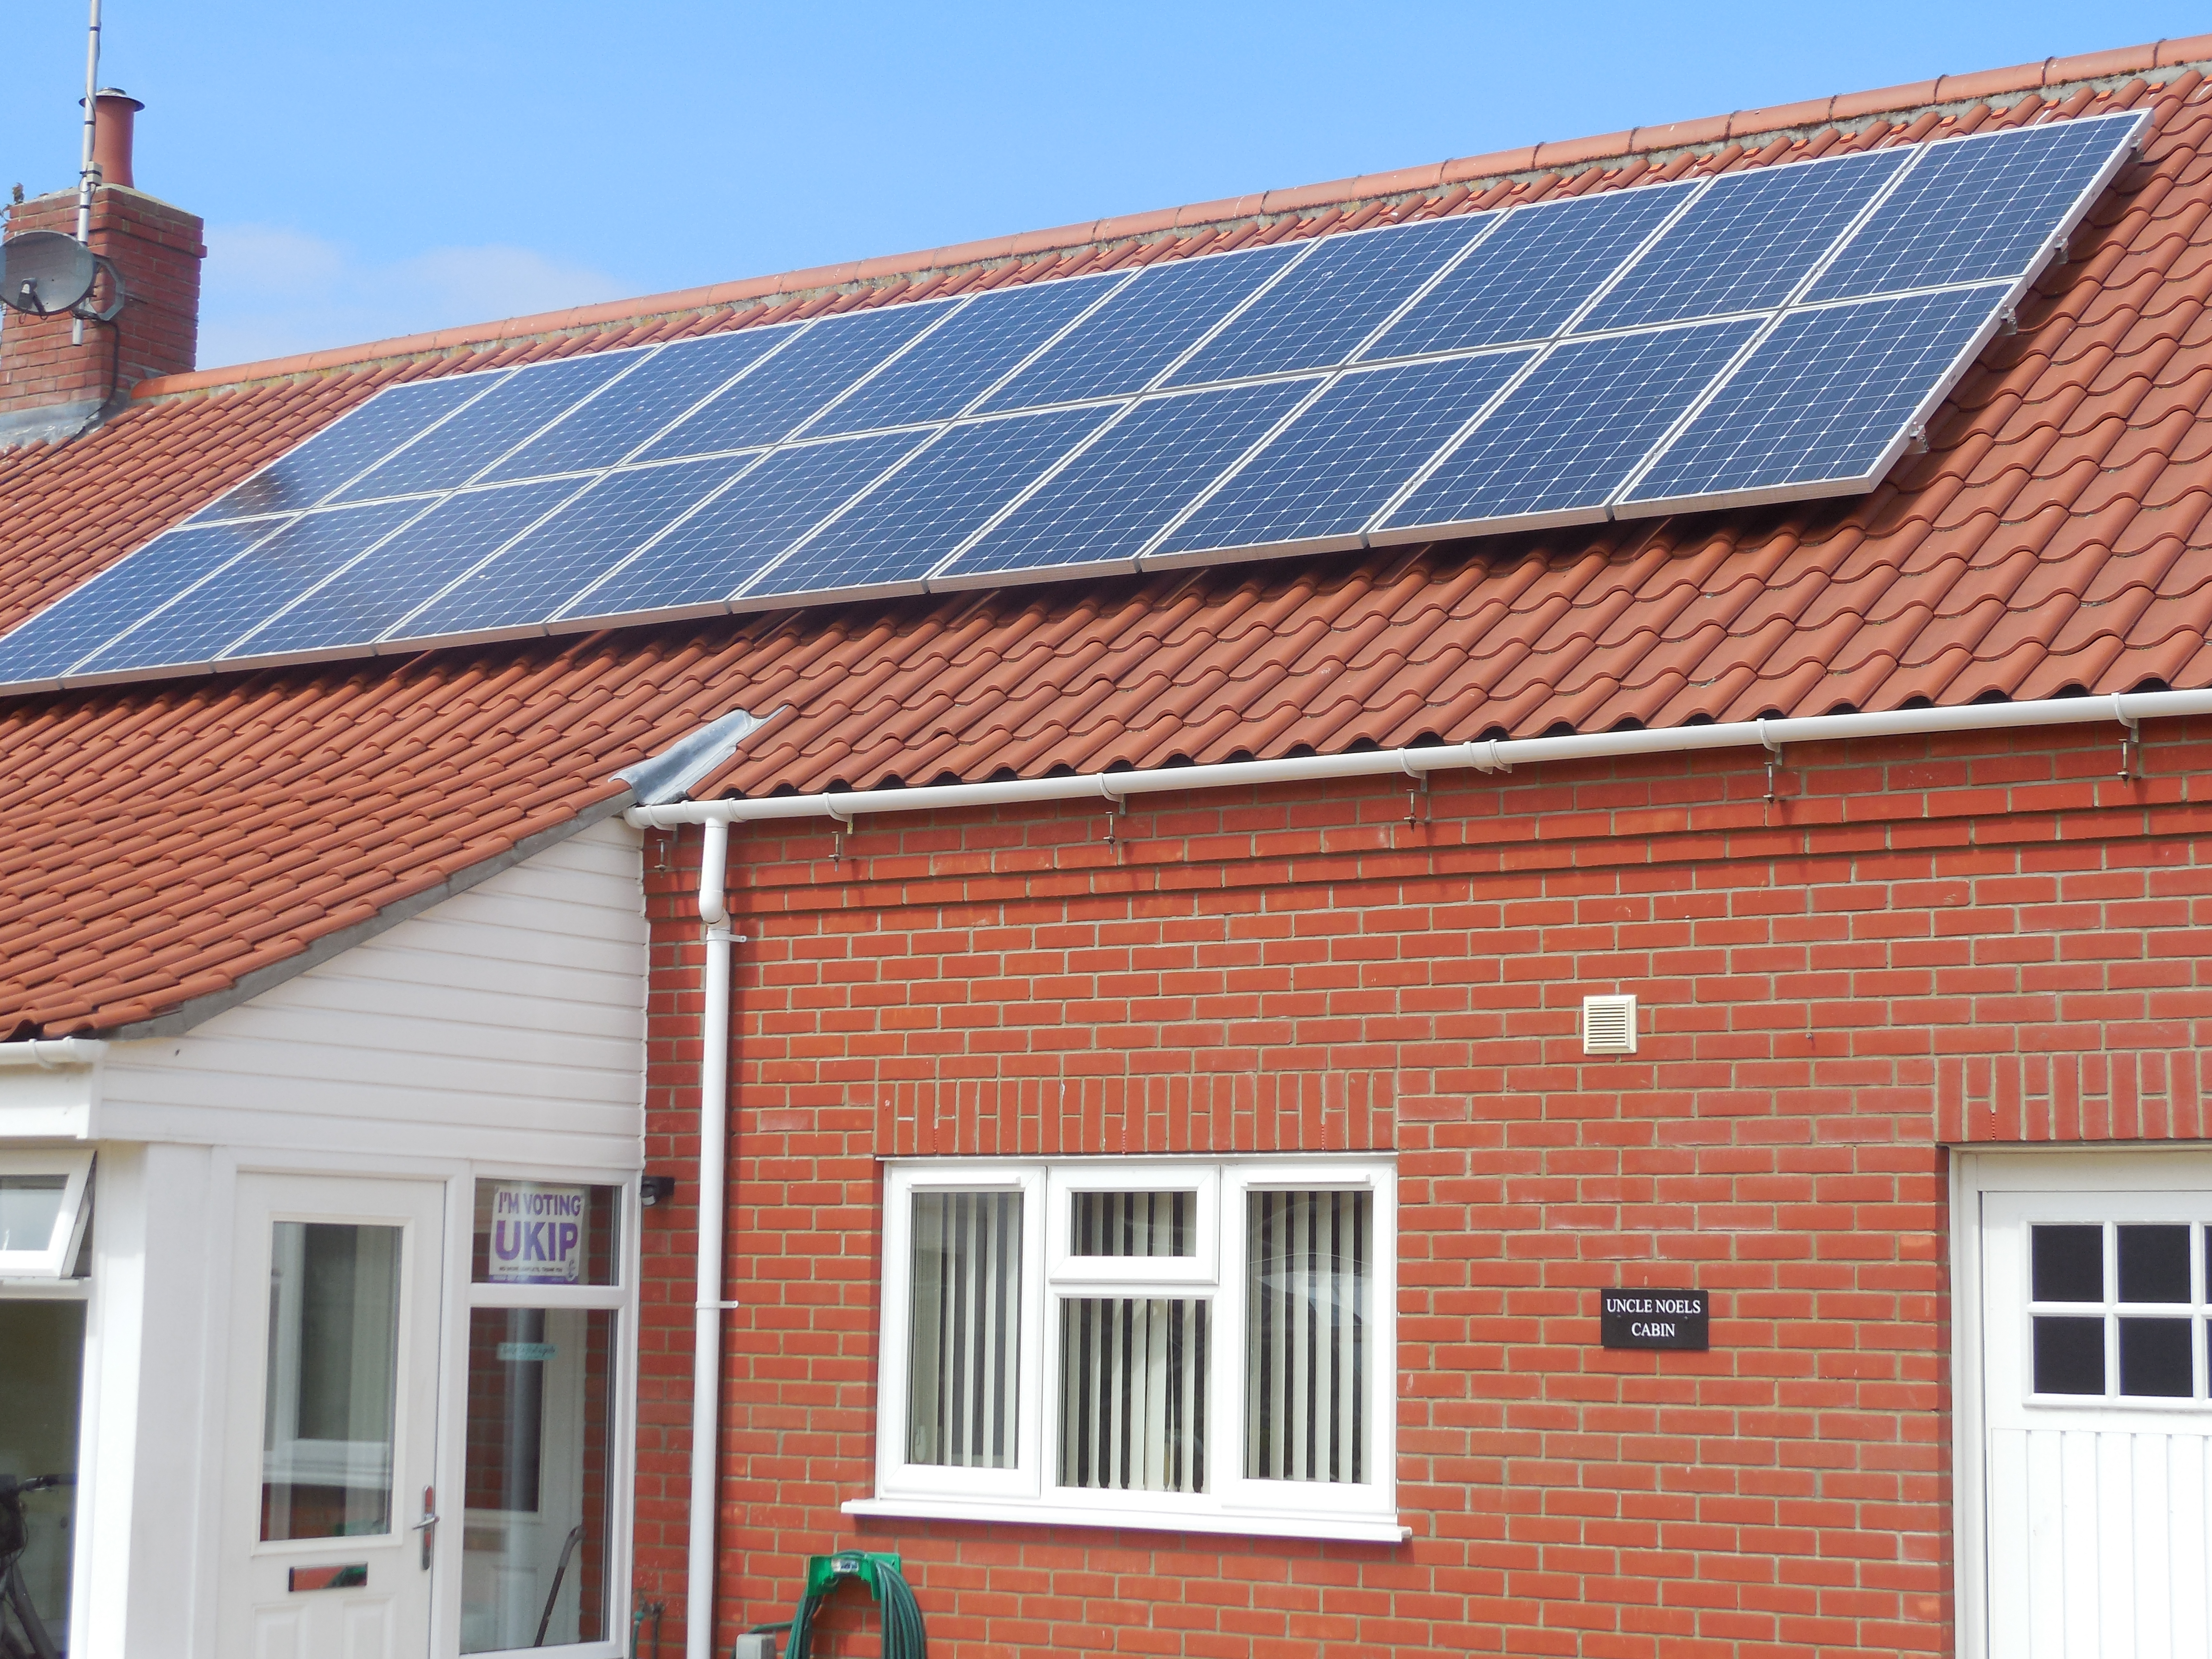 Norfolk bungalow with large solar array and I'm Voting UKIP poster